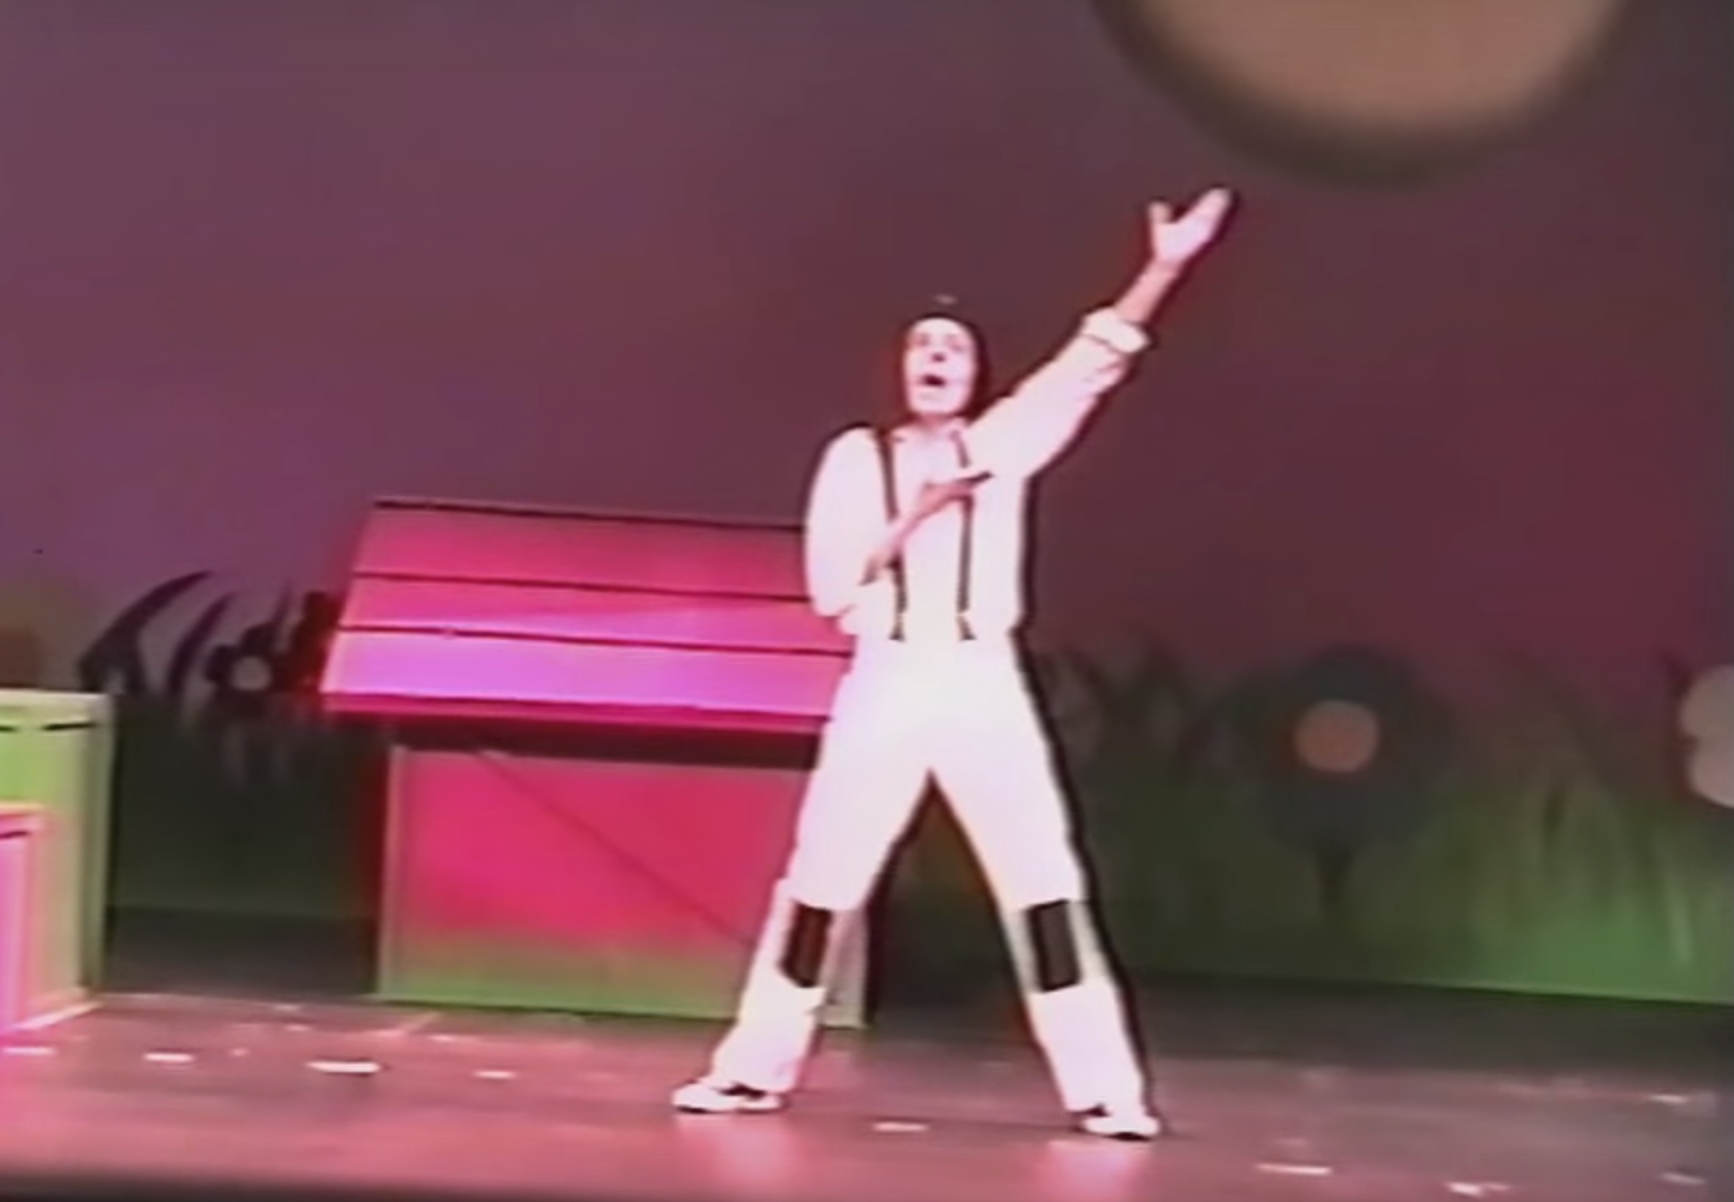 Here's a clip of Zac Efron playing Snoopy in high school because you deserve it